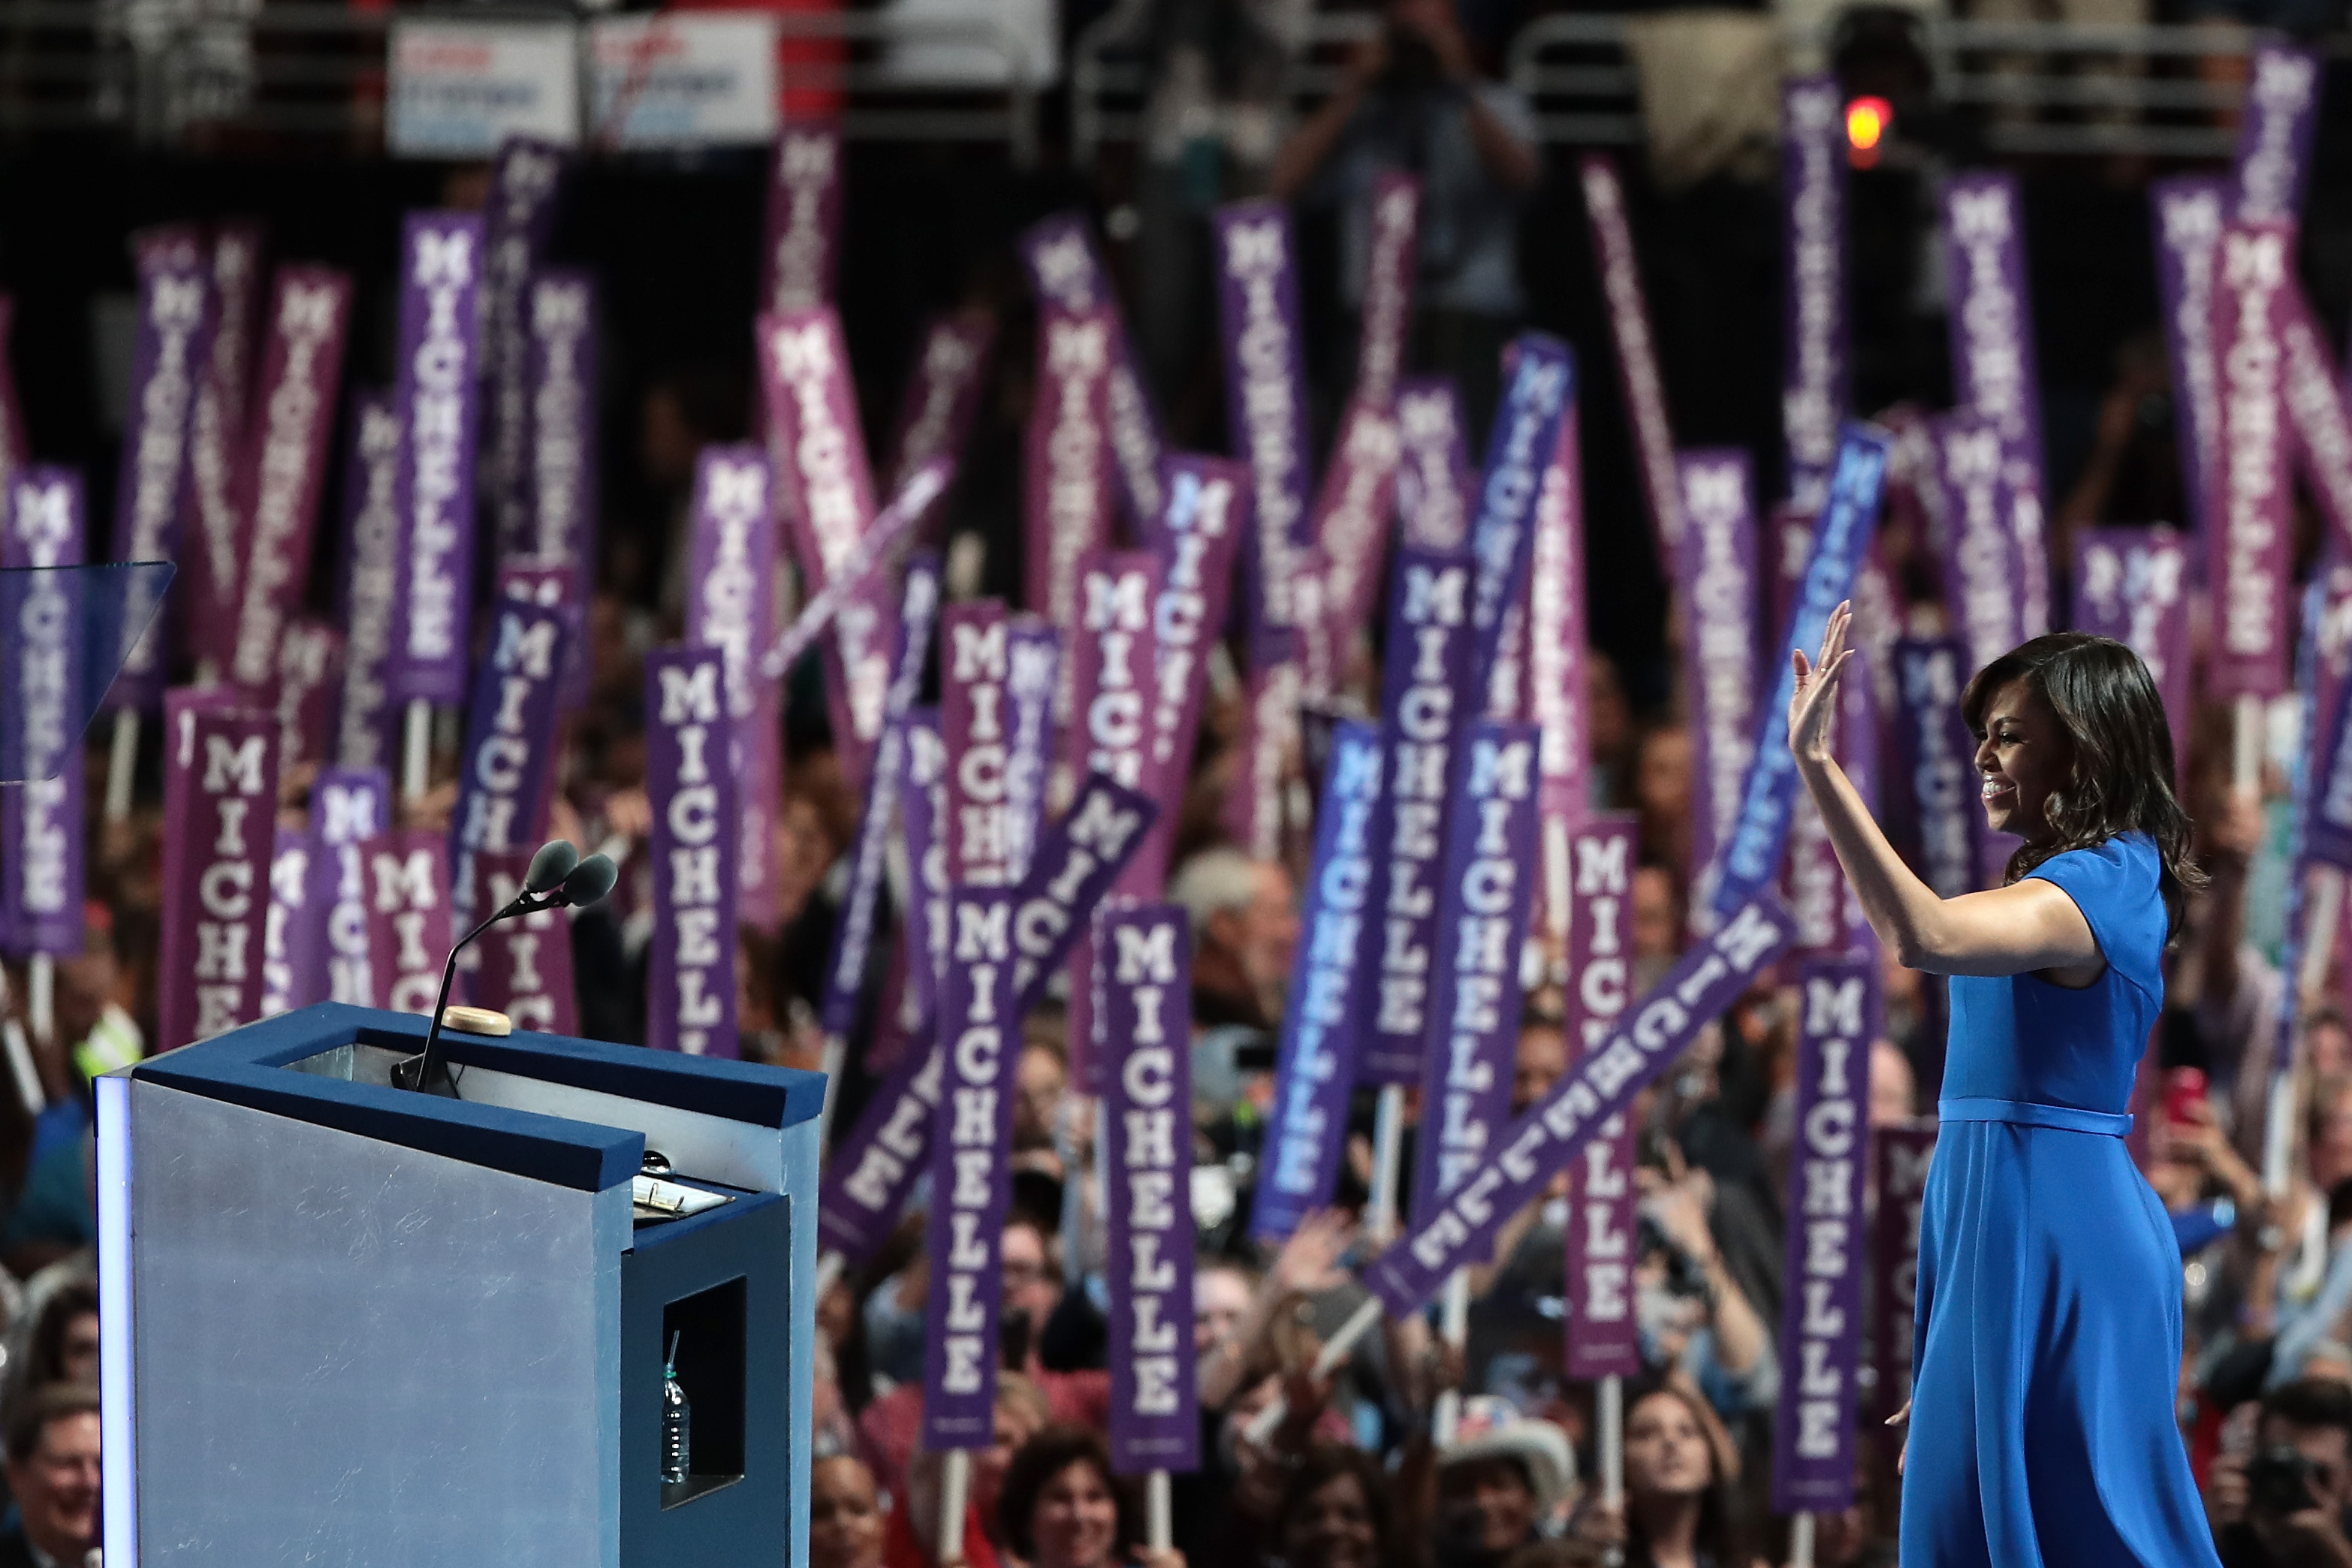 First lady Michelle Obama acknowledges the crowd after delivering remarks on the first day of the Democratic National Convention at the Wells Fargo Center, July 25, 2016 in Philadelphia, Pennsylvania.